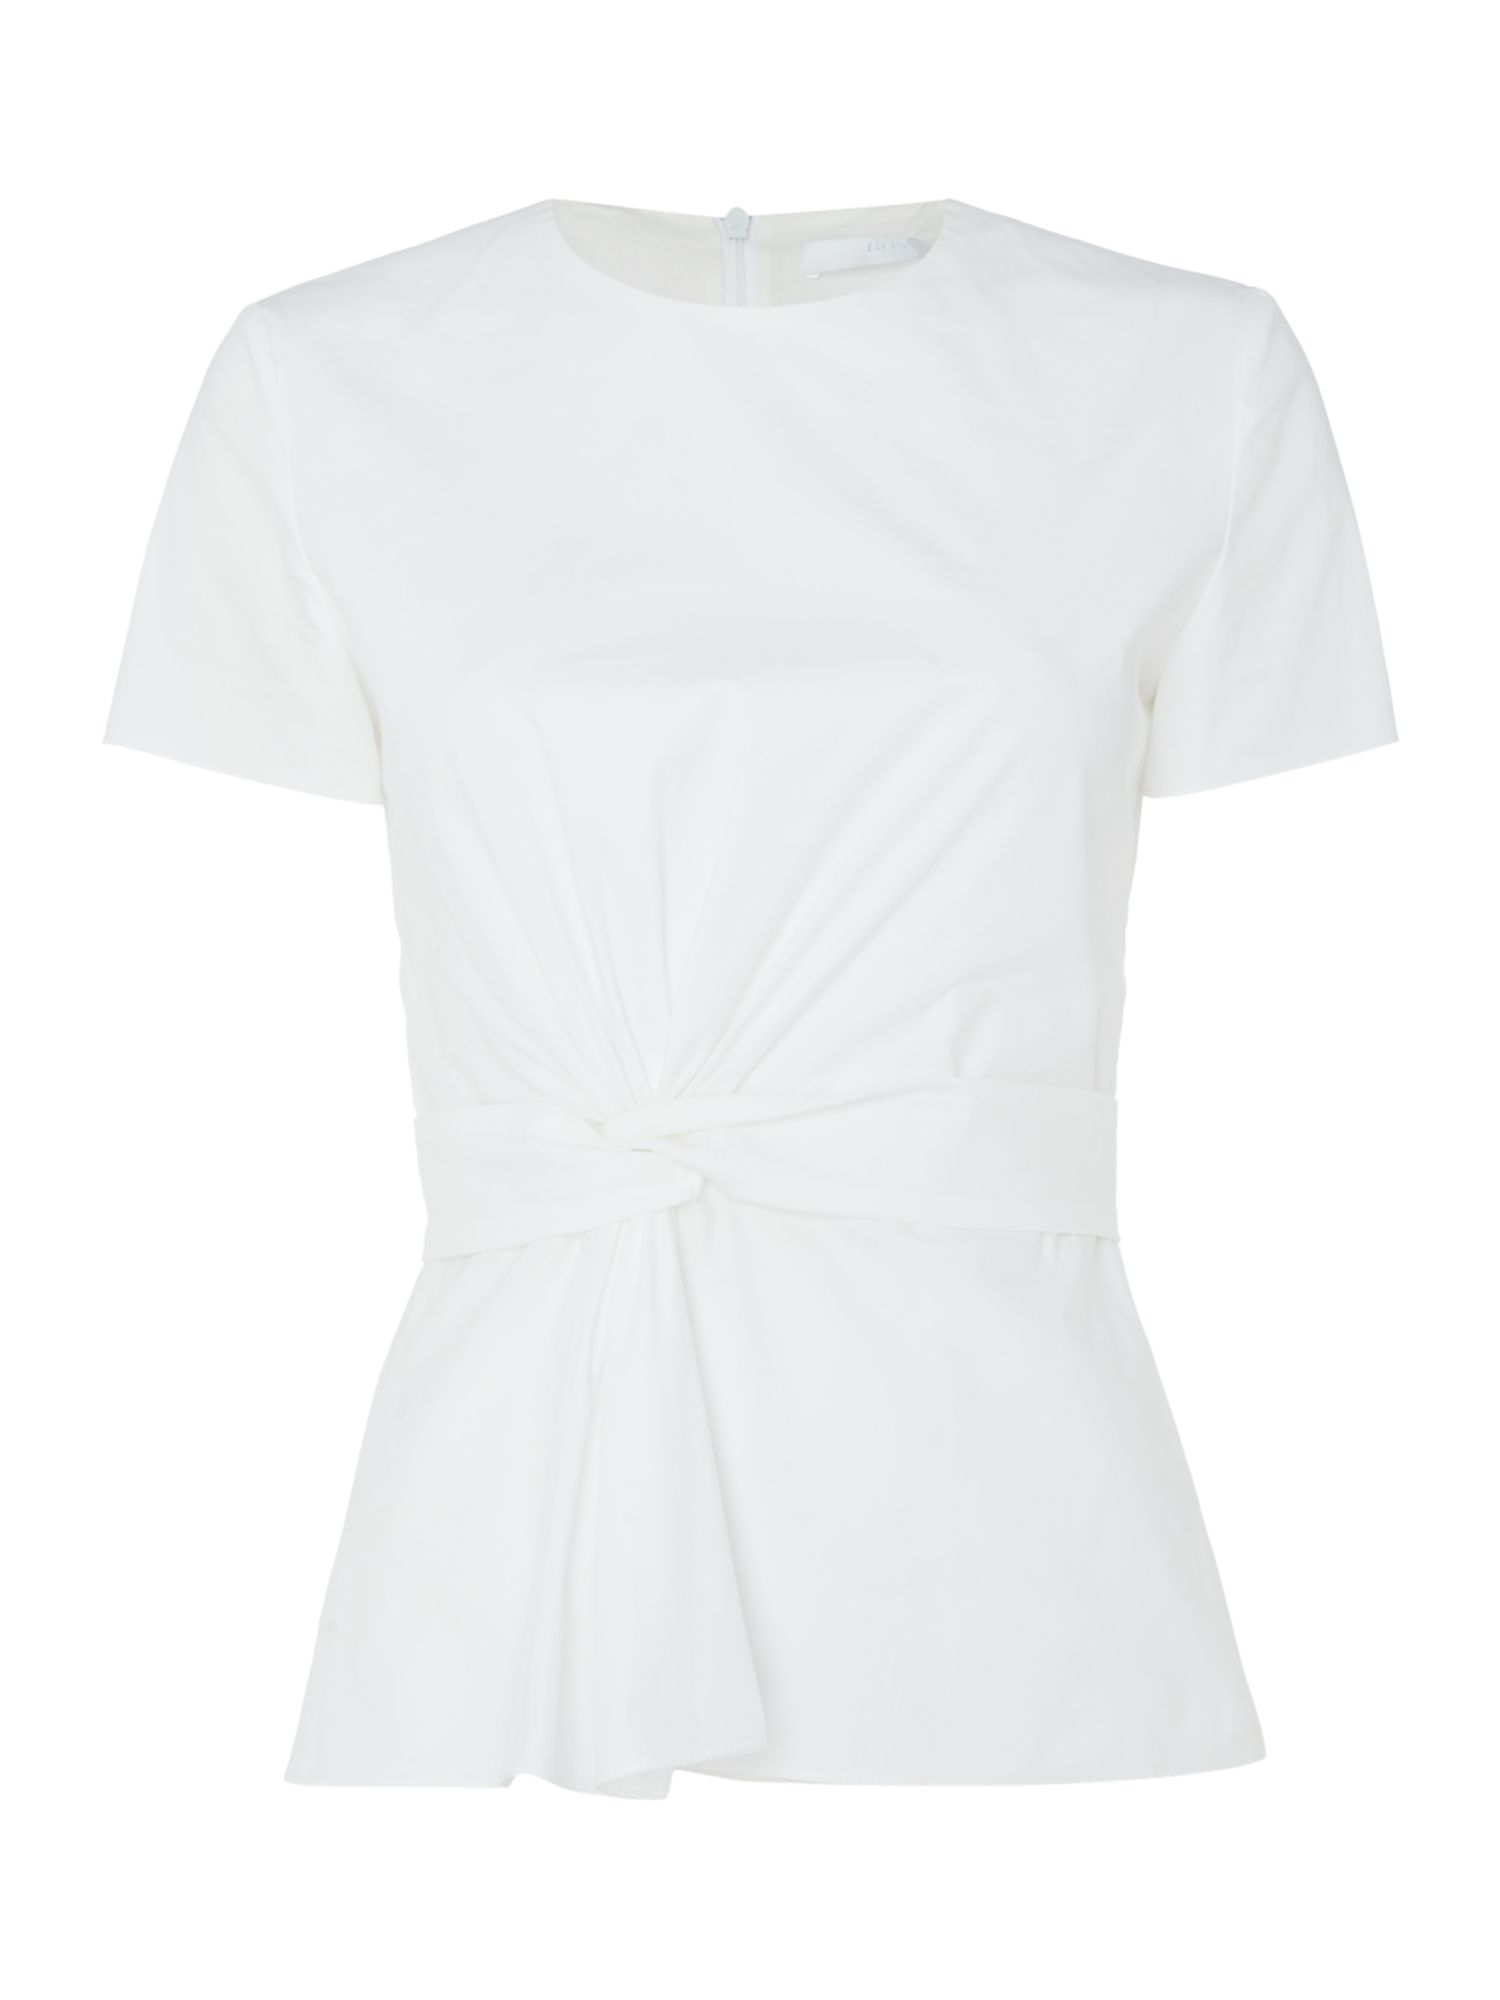 Hugo Boss Shortsleeve woven top with twist detail, White